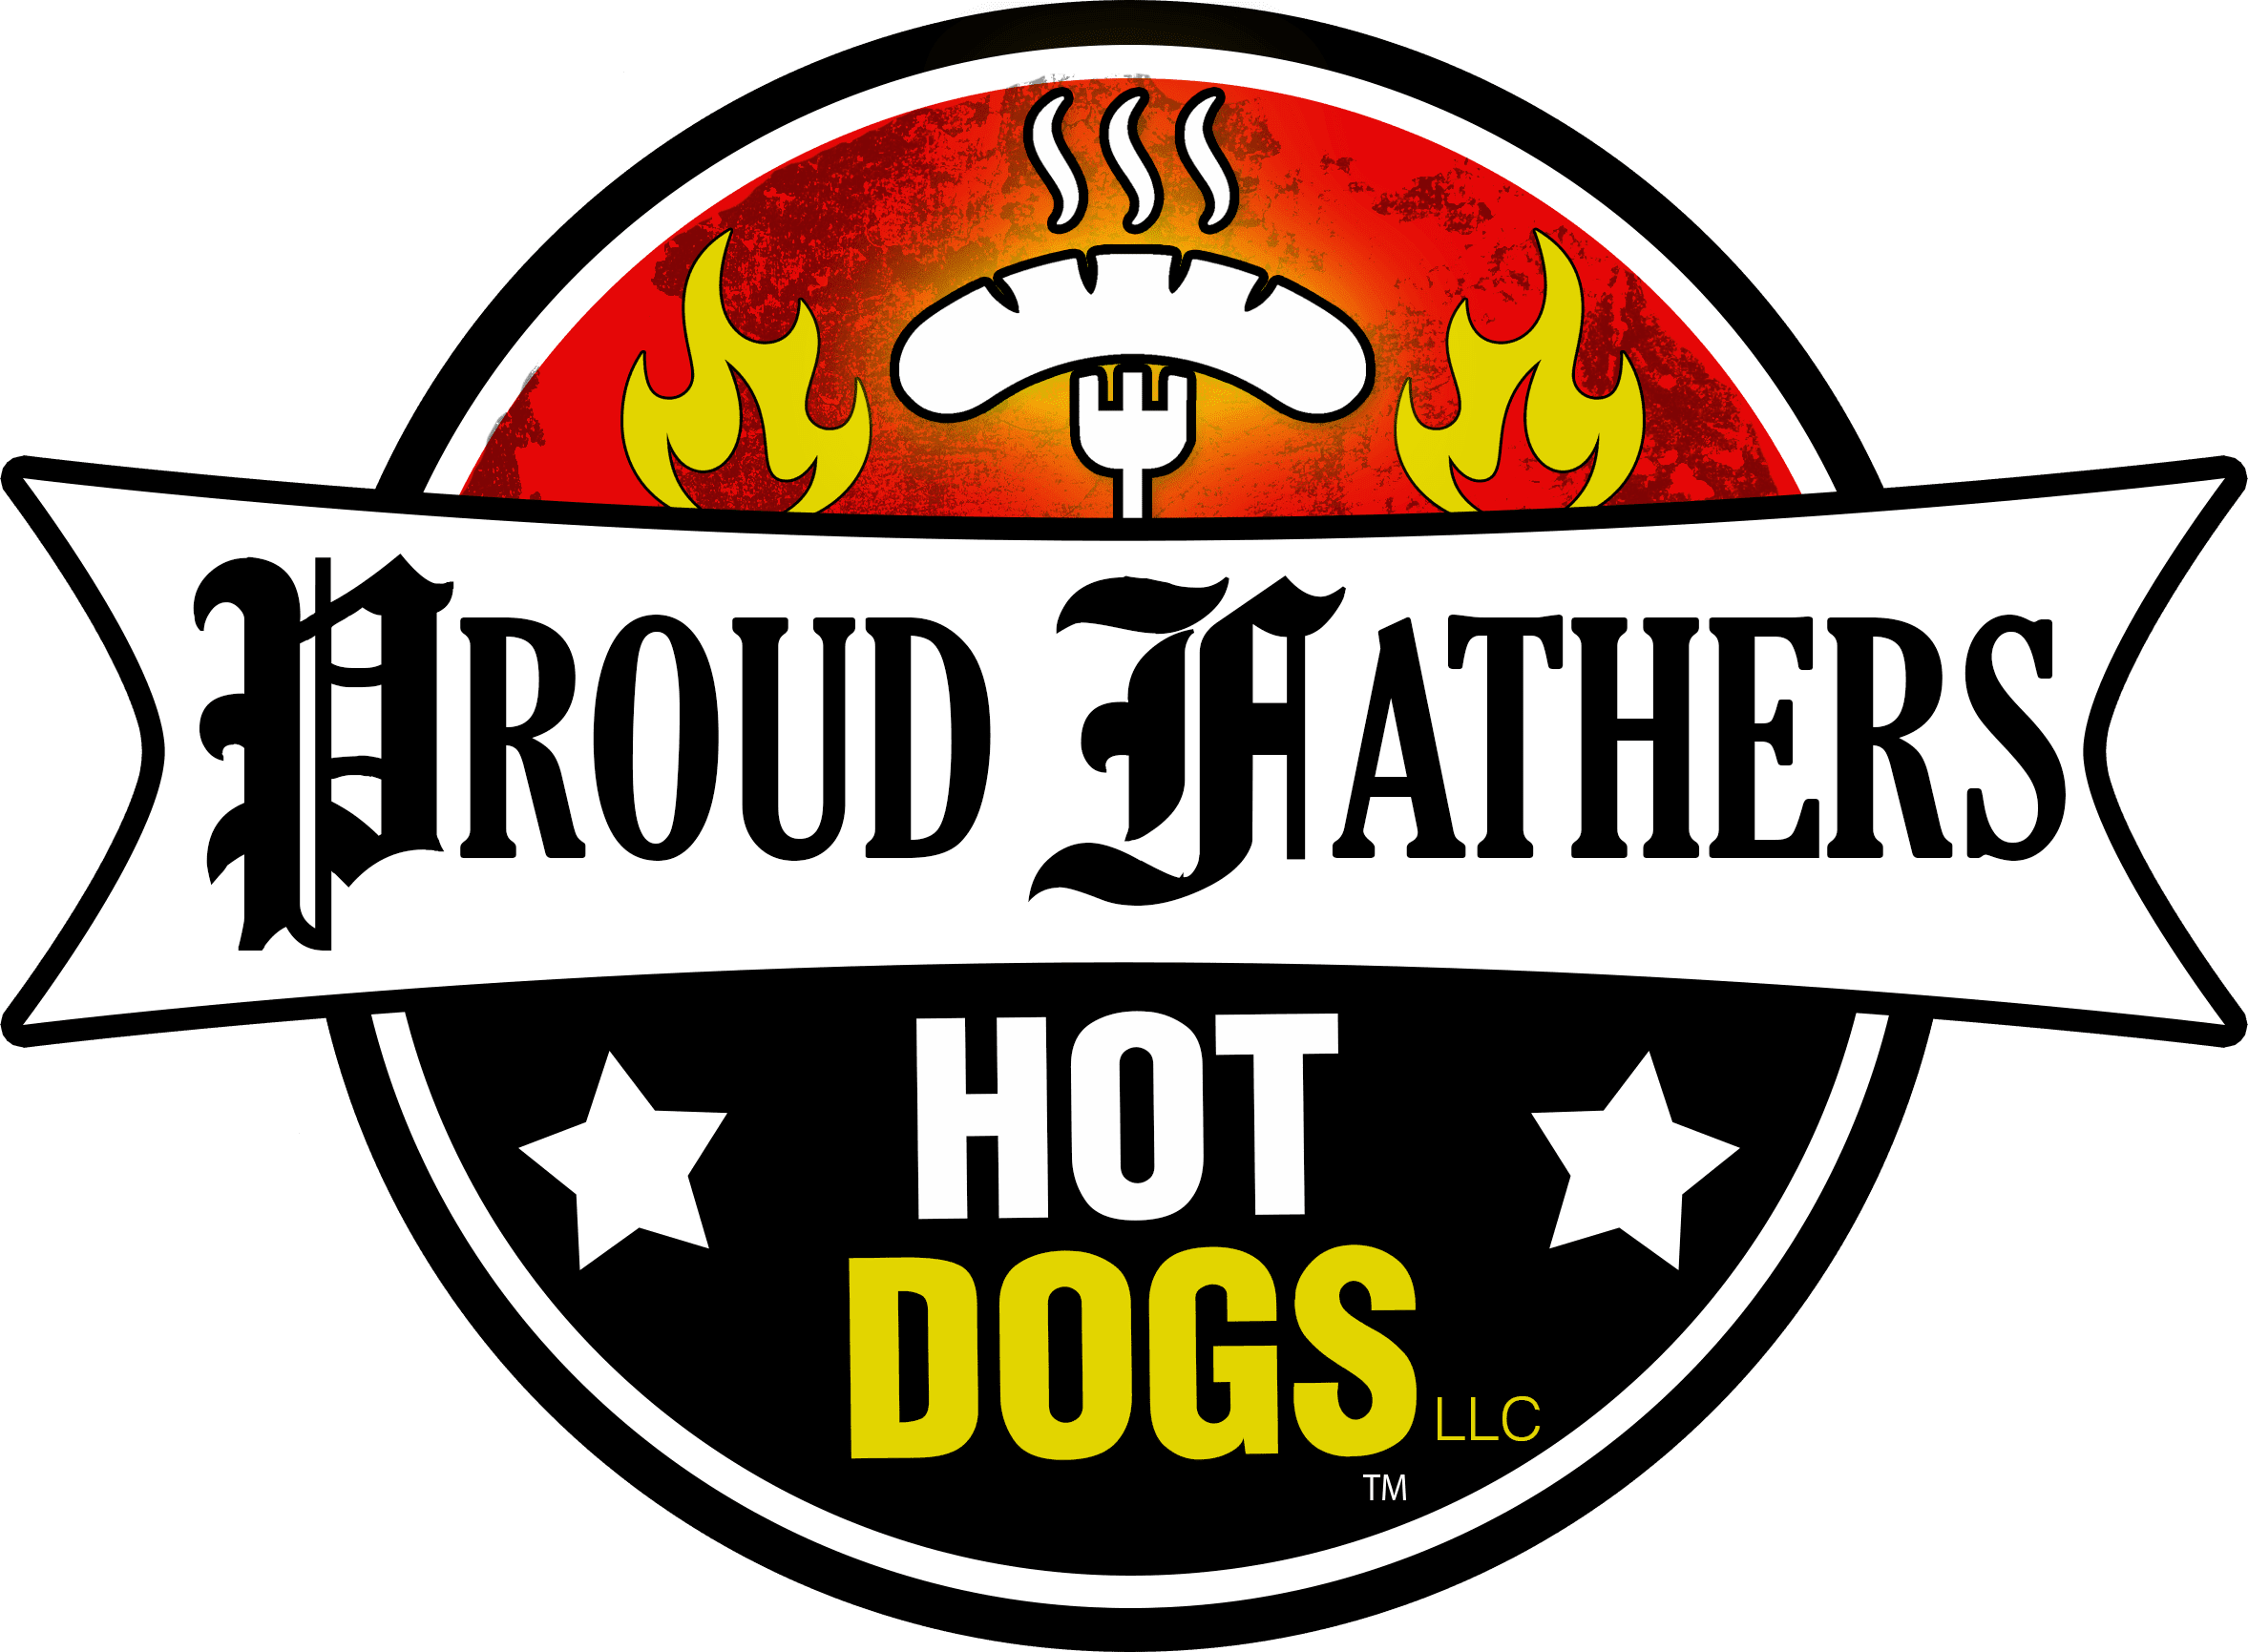 Proud Fathers Hot Dogs